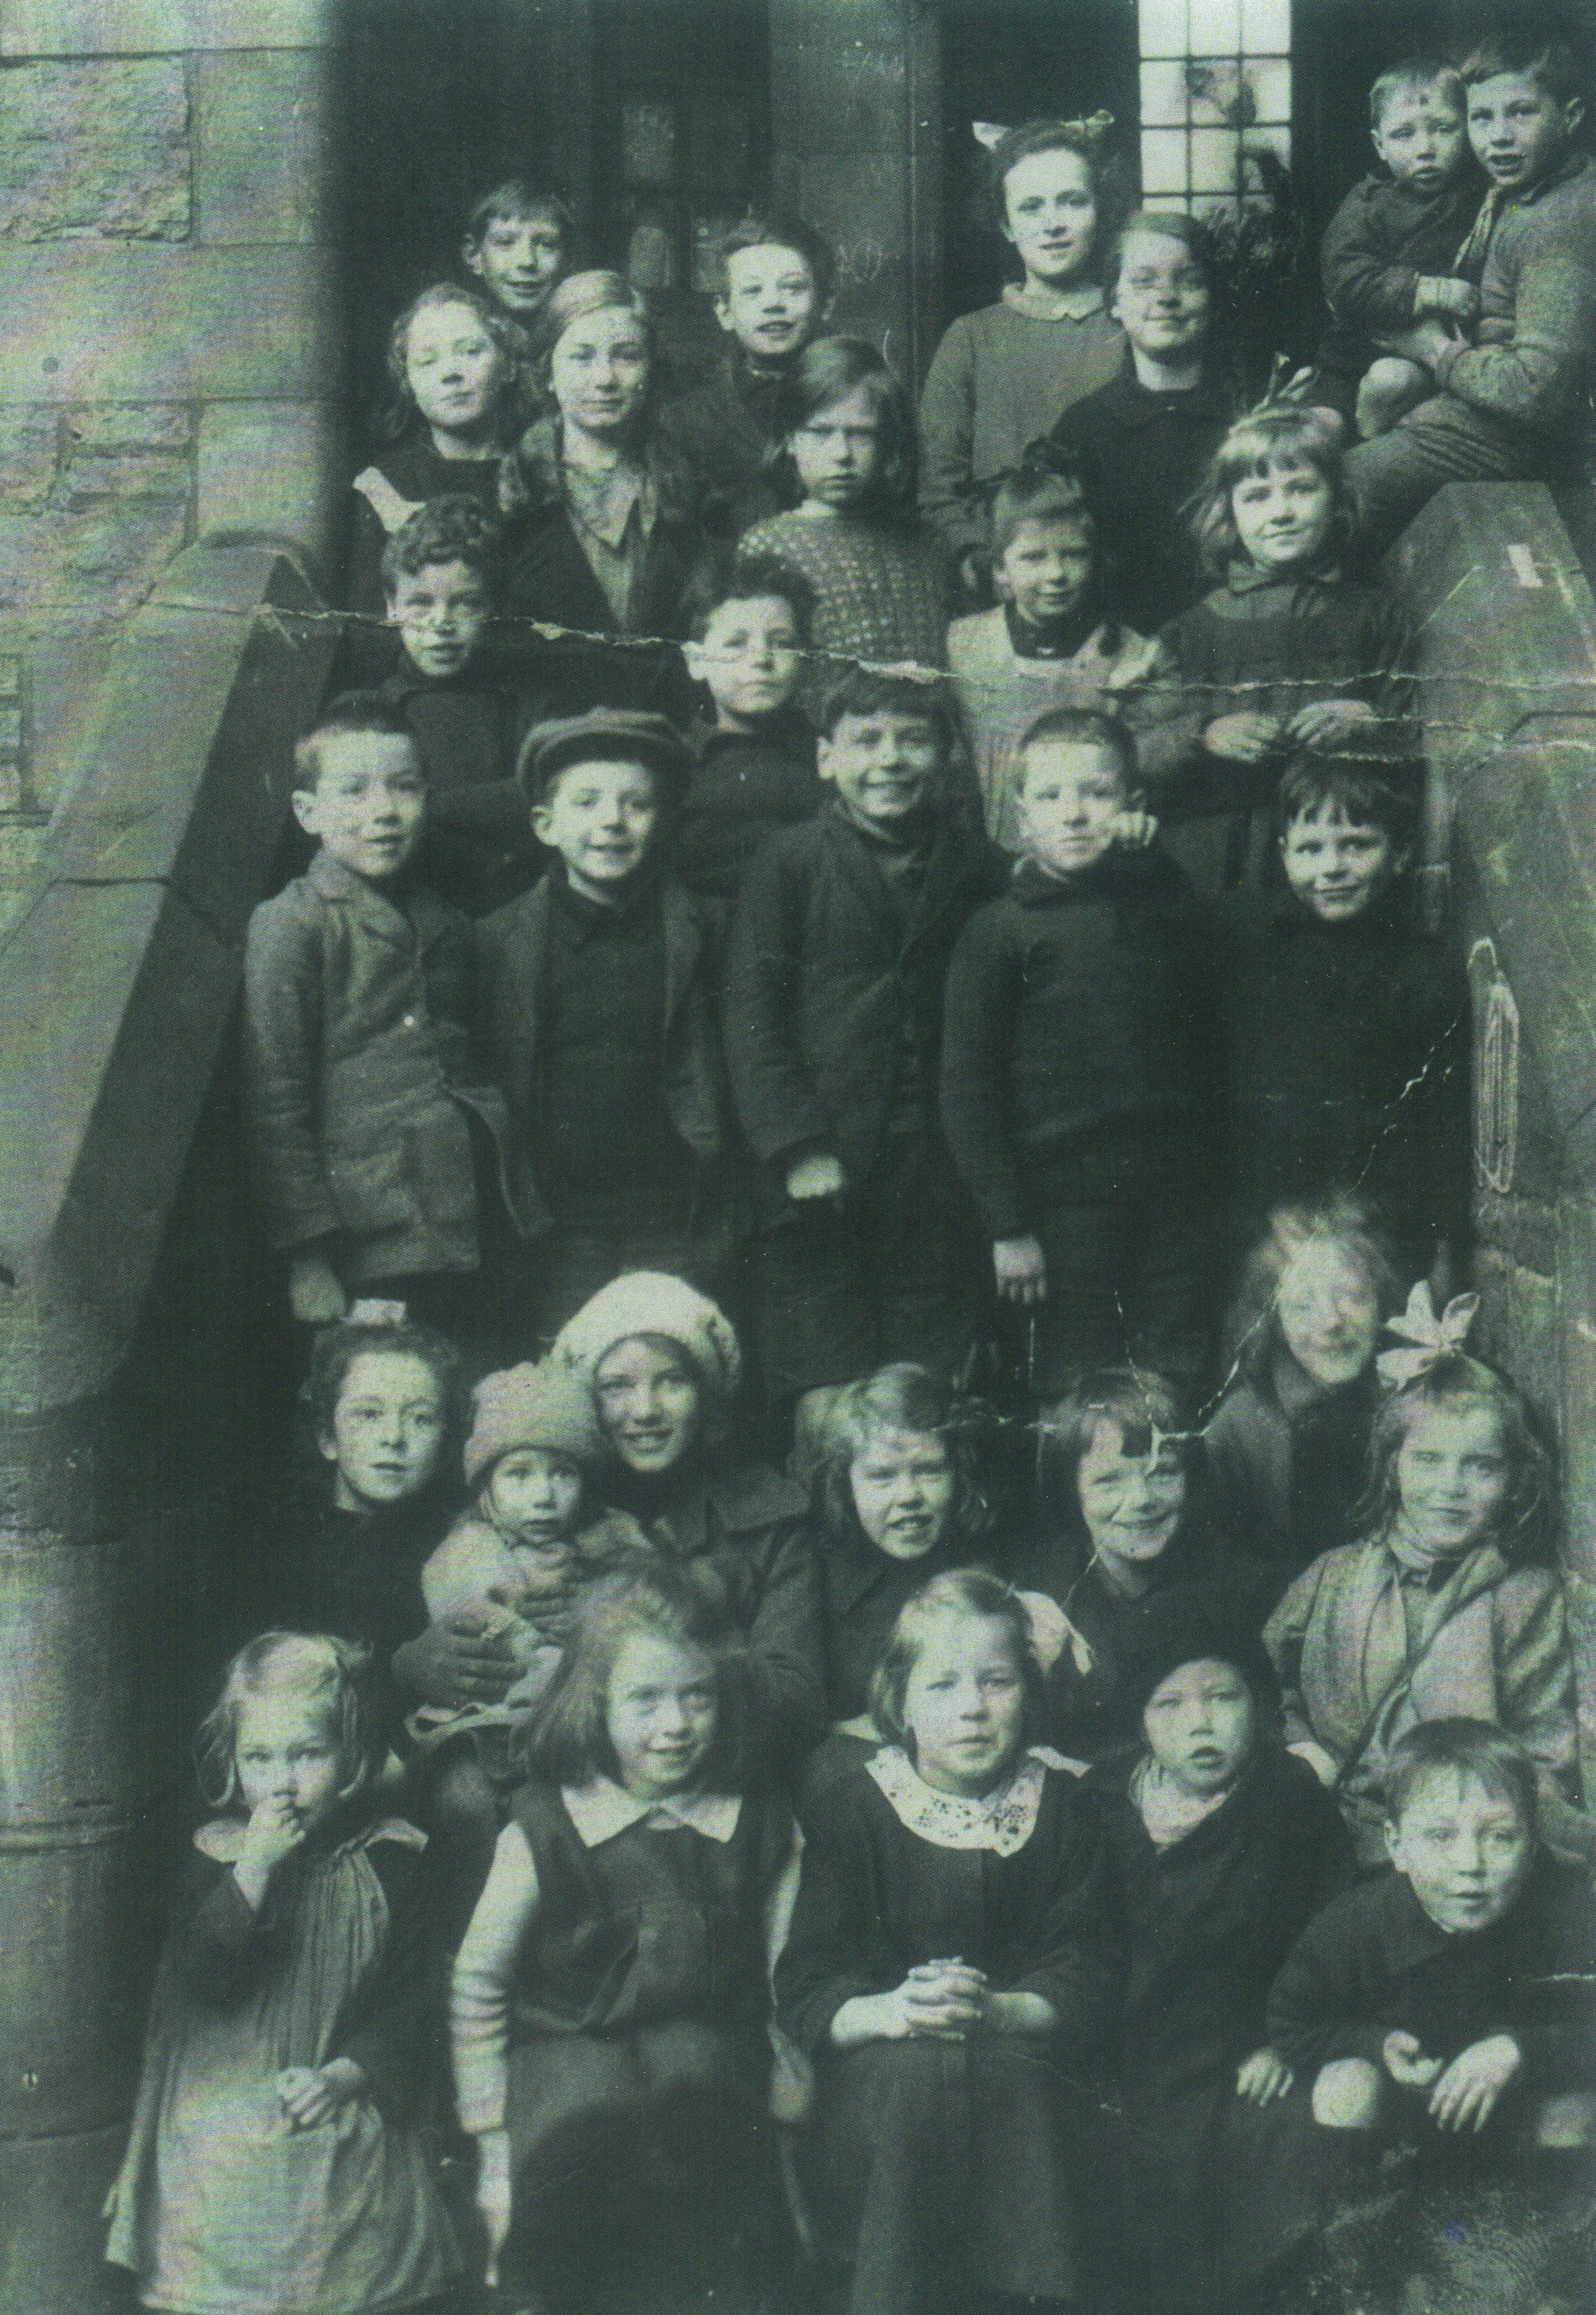 Dean Village children group photograph.